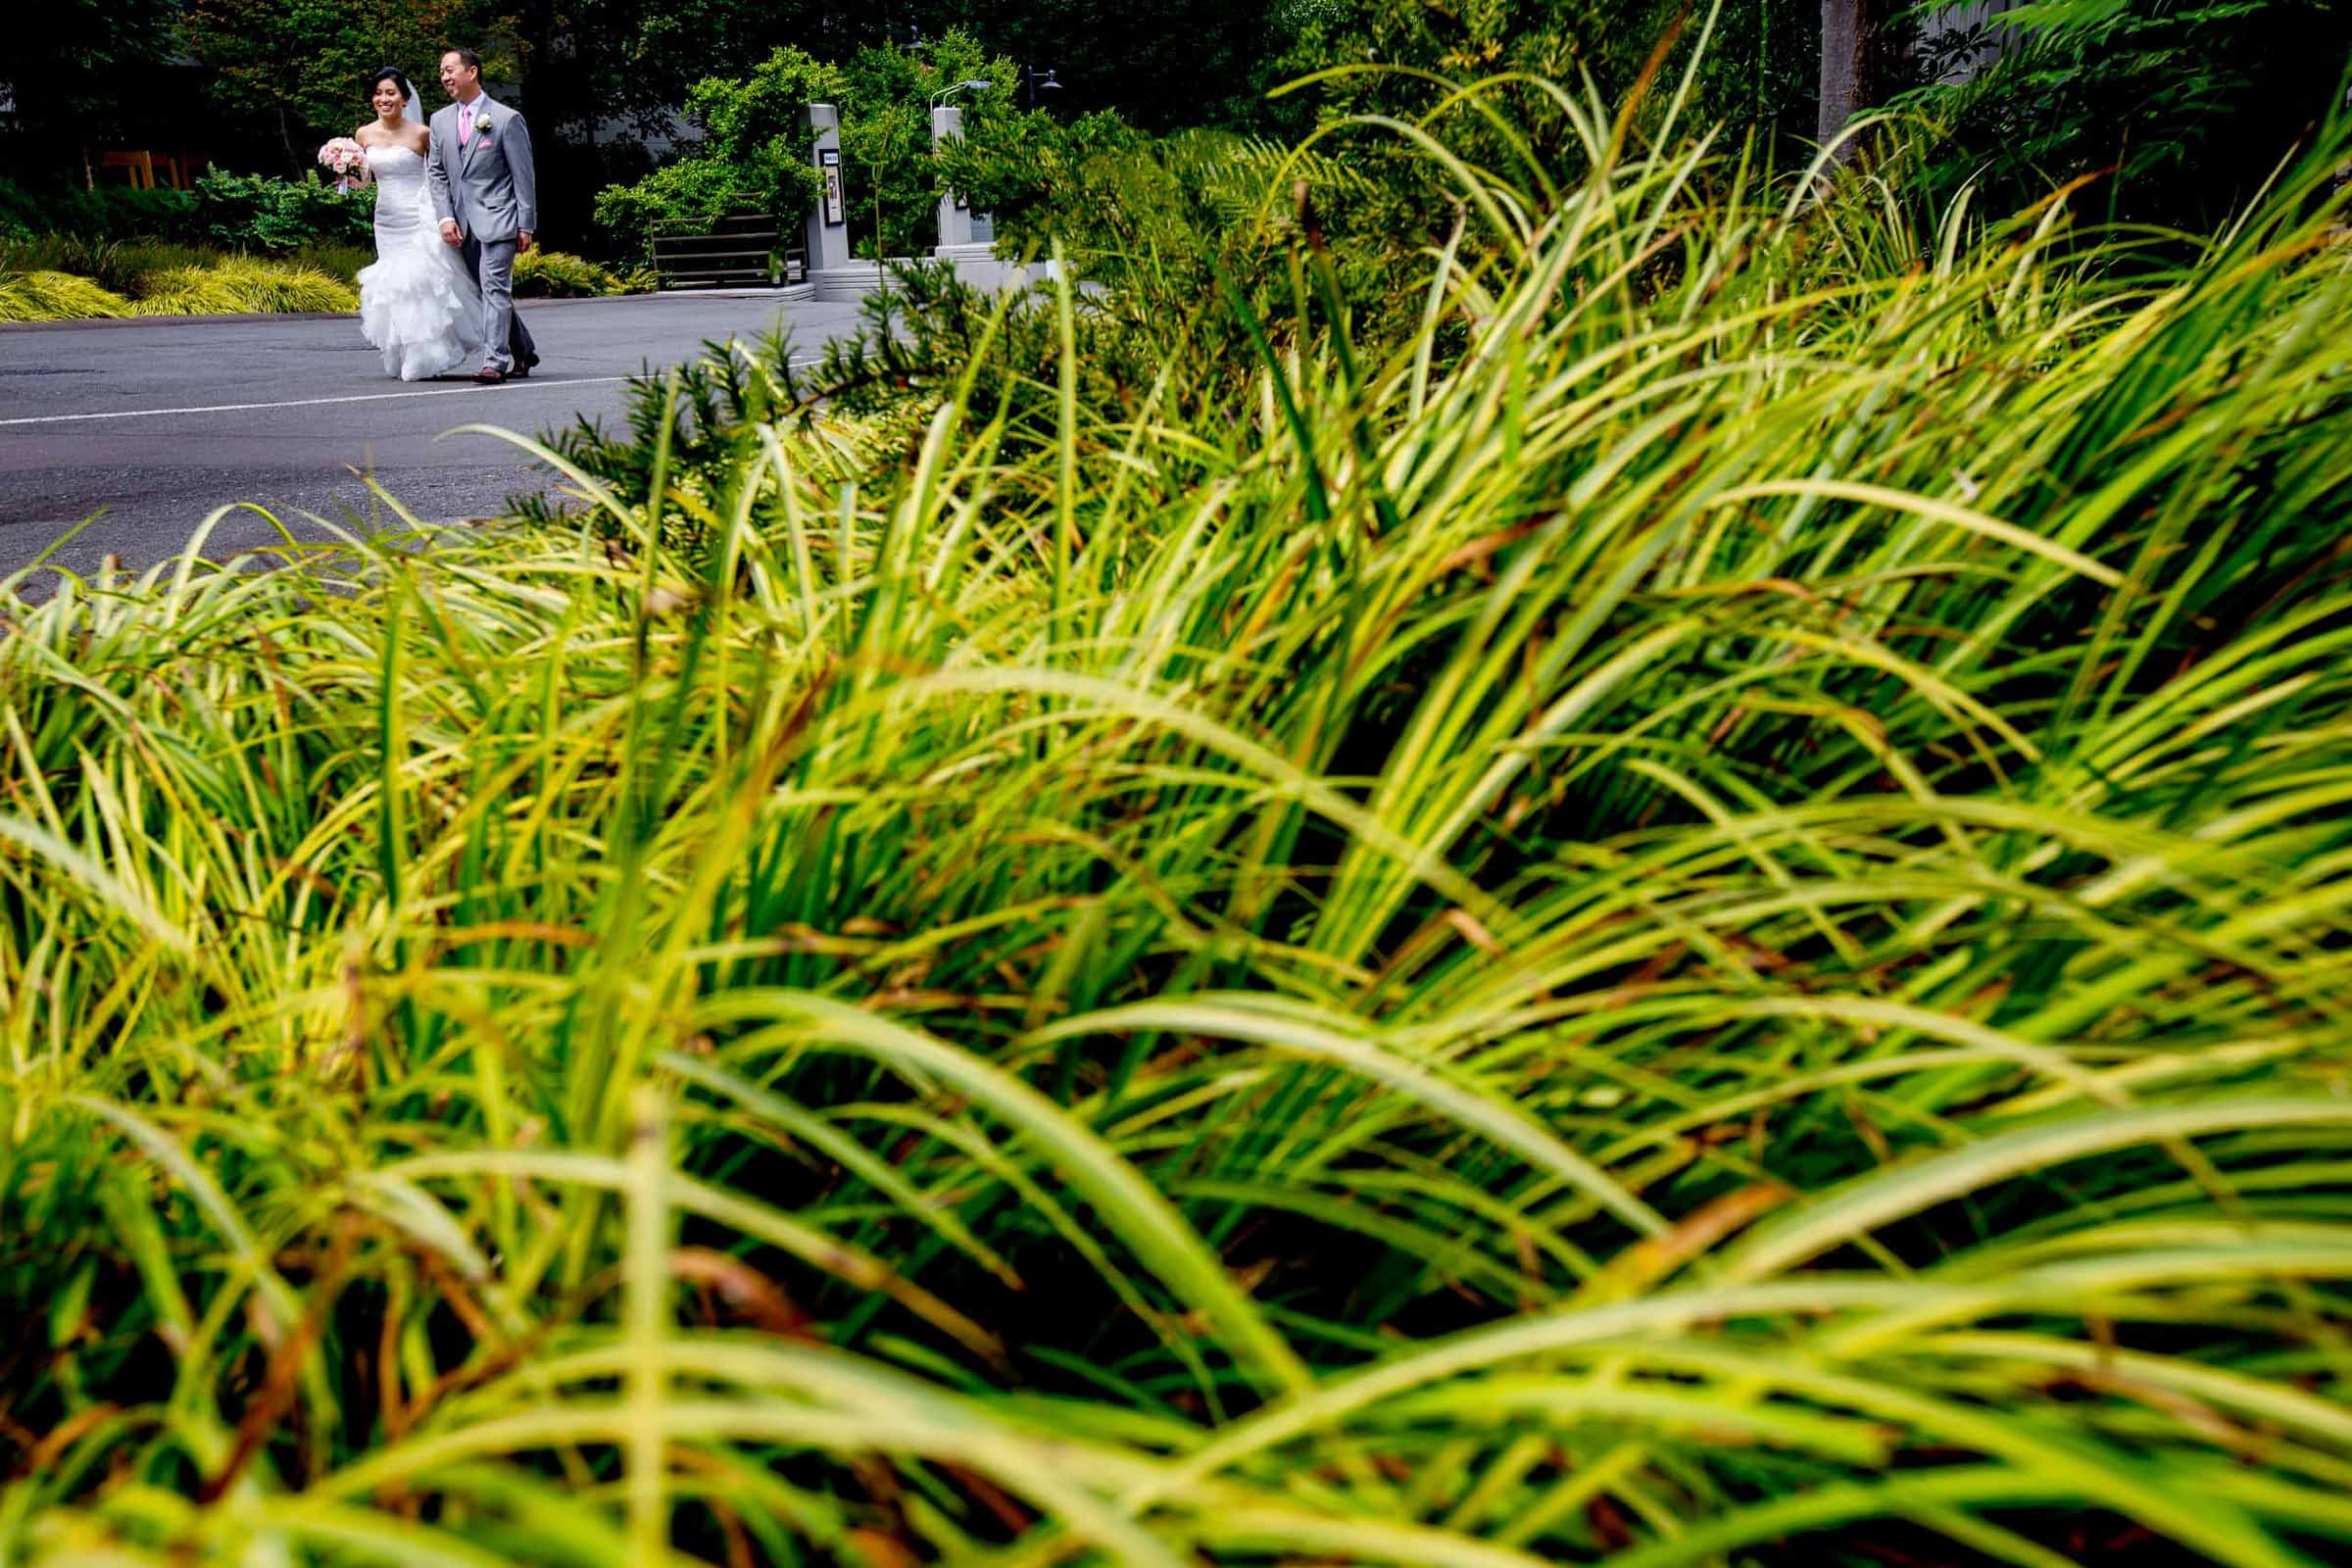 Action photo of a bride and groom walking toward their Saltys wedding in Seattle, Washington.